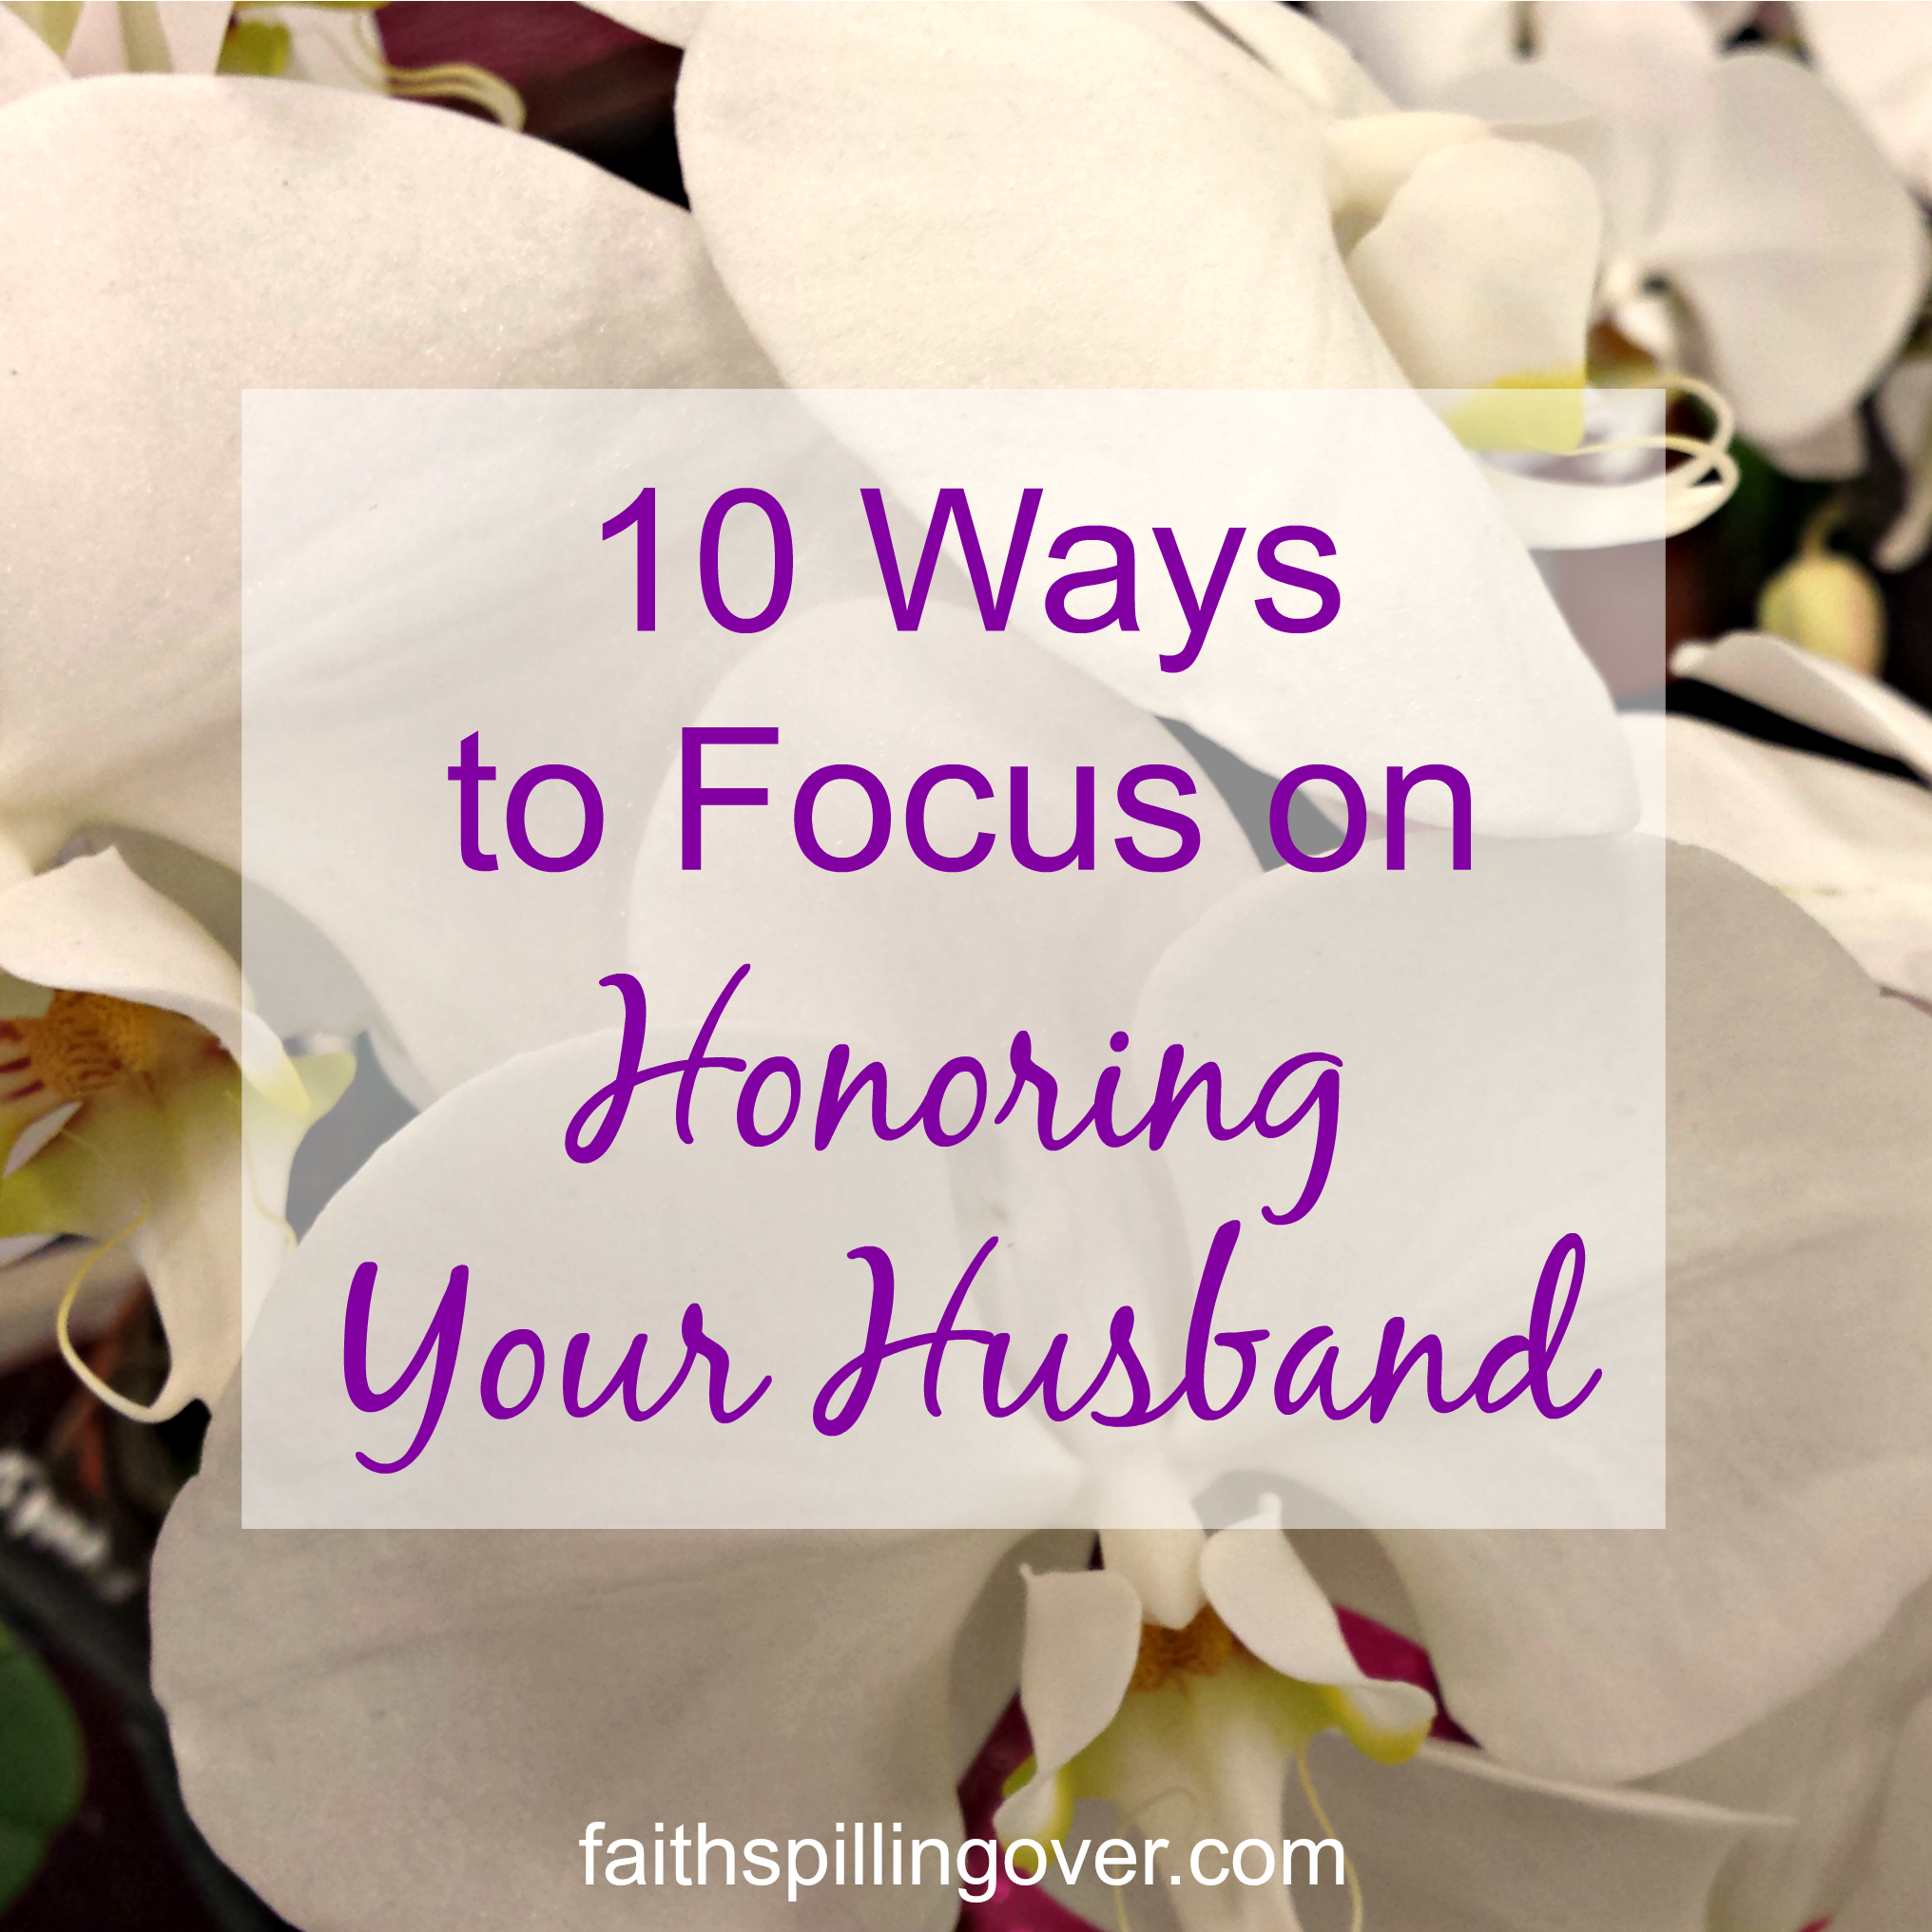 As we take our focus off of ourselves in order to do a better job of honoring our husbands, we reap the rewards of a better relationship.